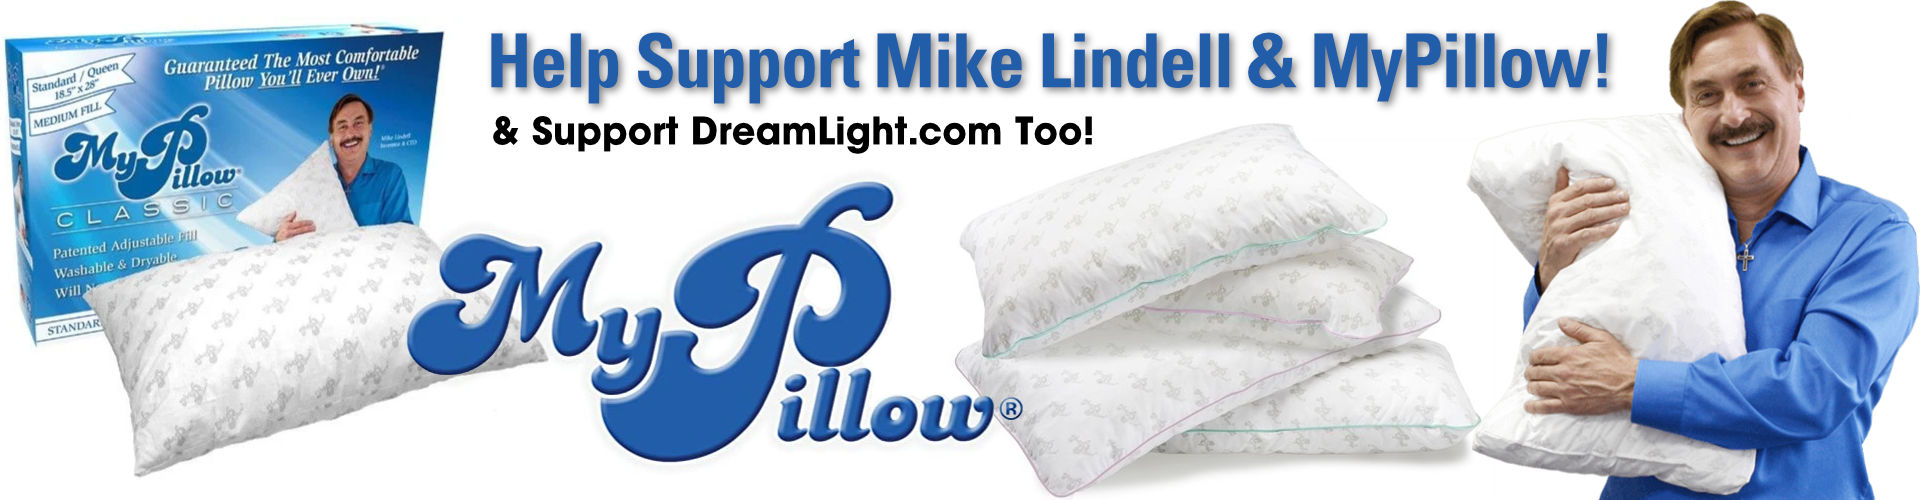 Help Support Mike Lindell & MyPillow and Support DreamLight.com too!